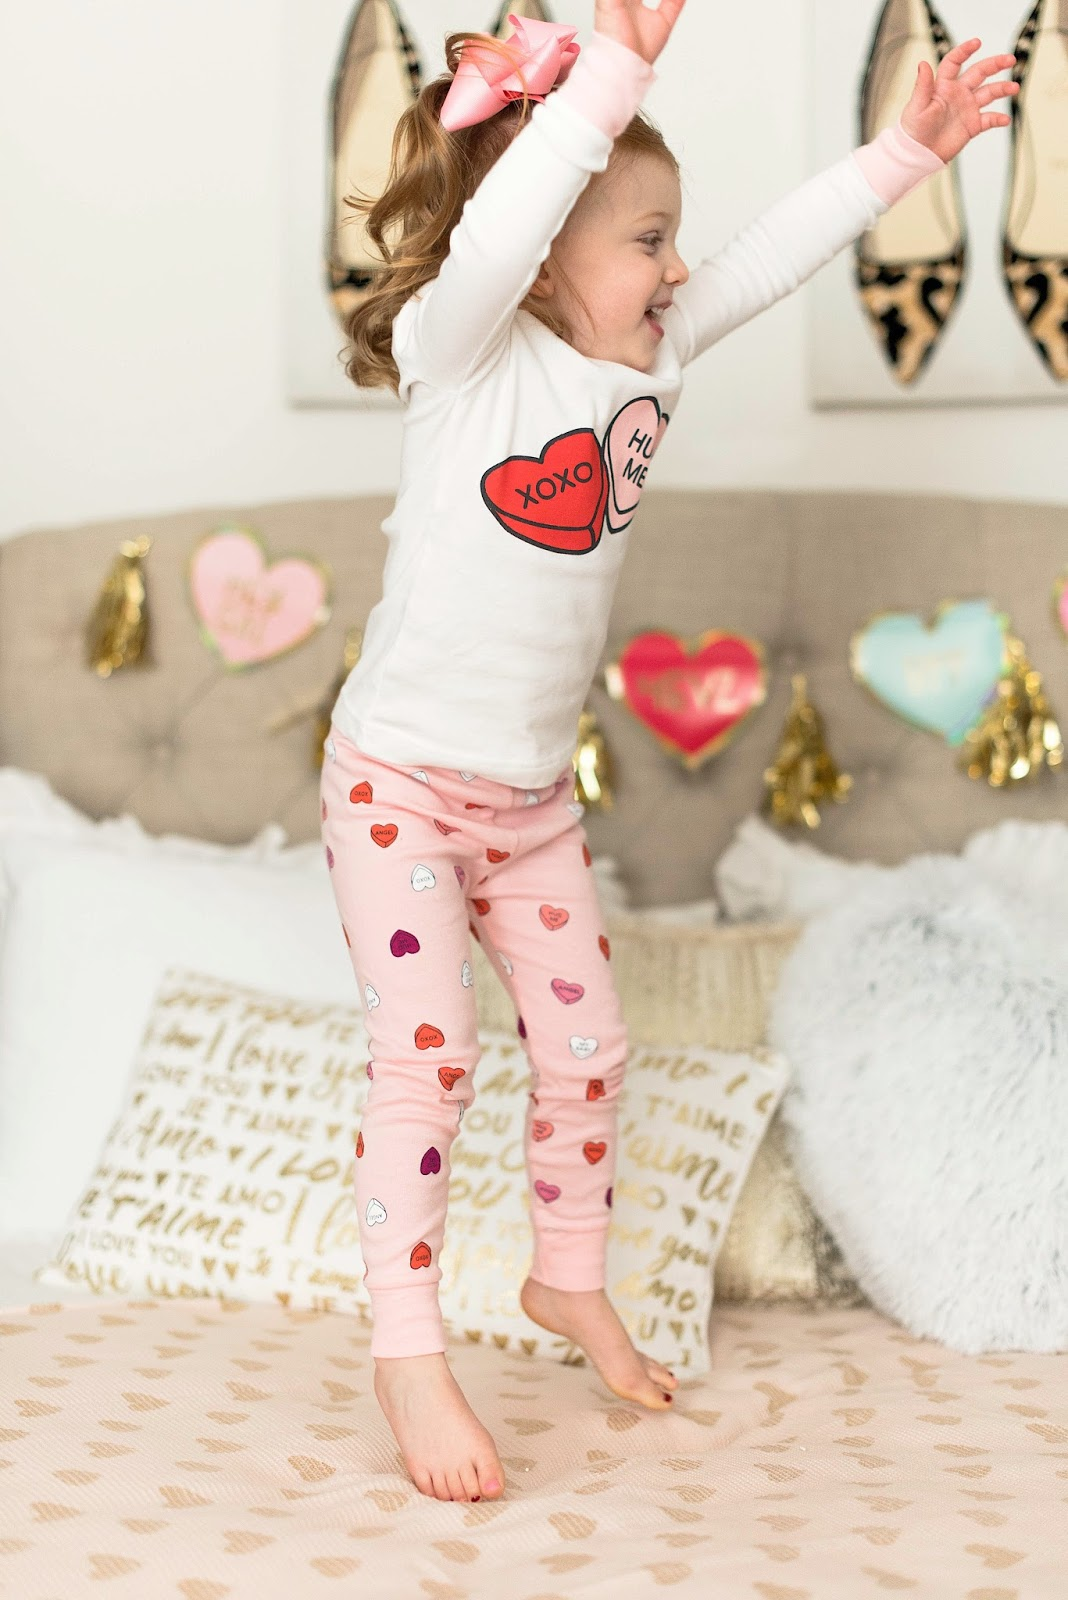 Toddler Valentine Pajamas - Click through to see more on Something Delightful Blog